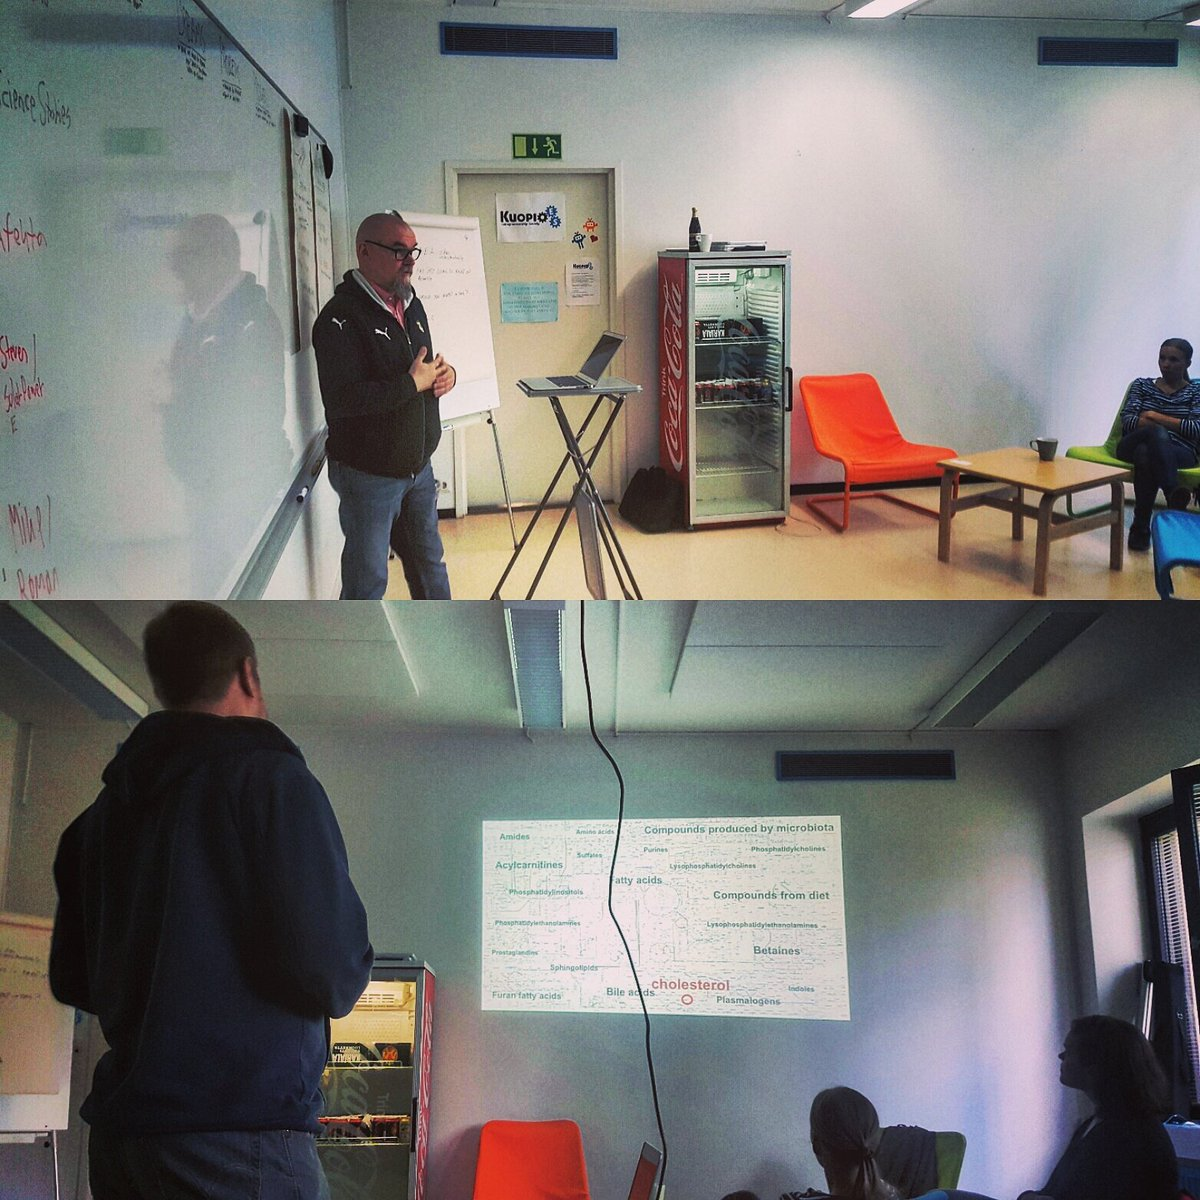 Thanks Kari Voutila and the teams! Ready for the next event with high enthusiasm  #accelerator #uef  #savonia #kuopiochamber #startup<br>http://pic.twitter.com/iyXMGfm0by